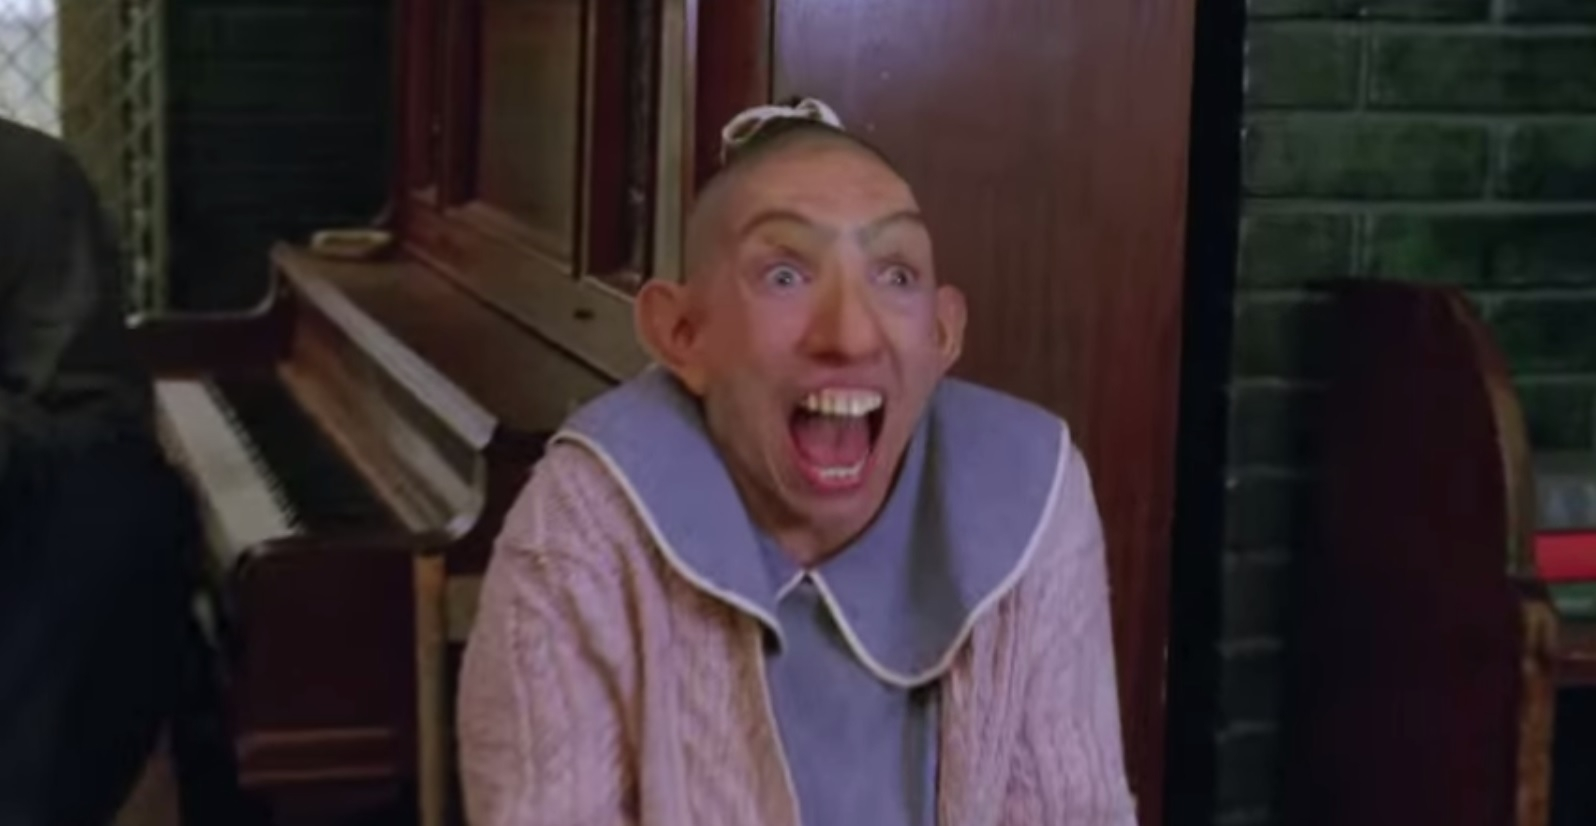 Pepper from American Horror Story